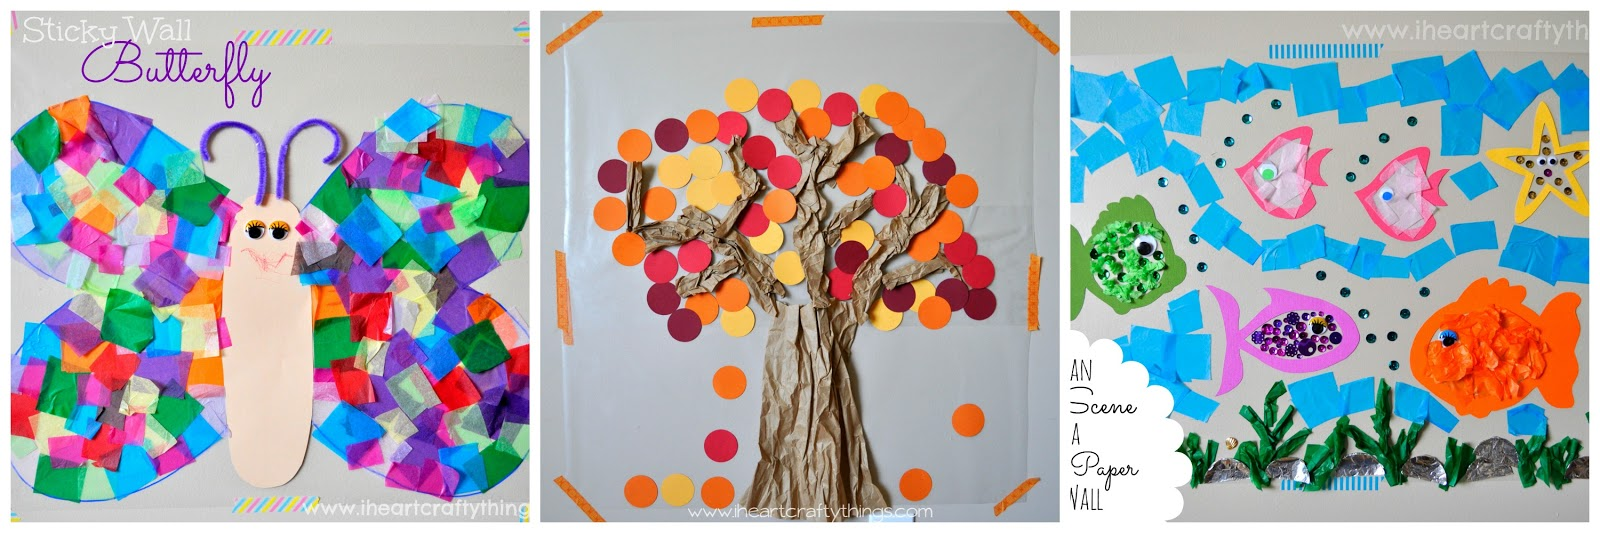 You might also enjoy our sticky wall butterfly contact paper fall tree or sticky wall ocean art